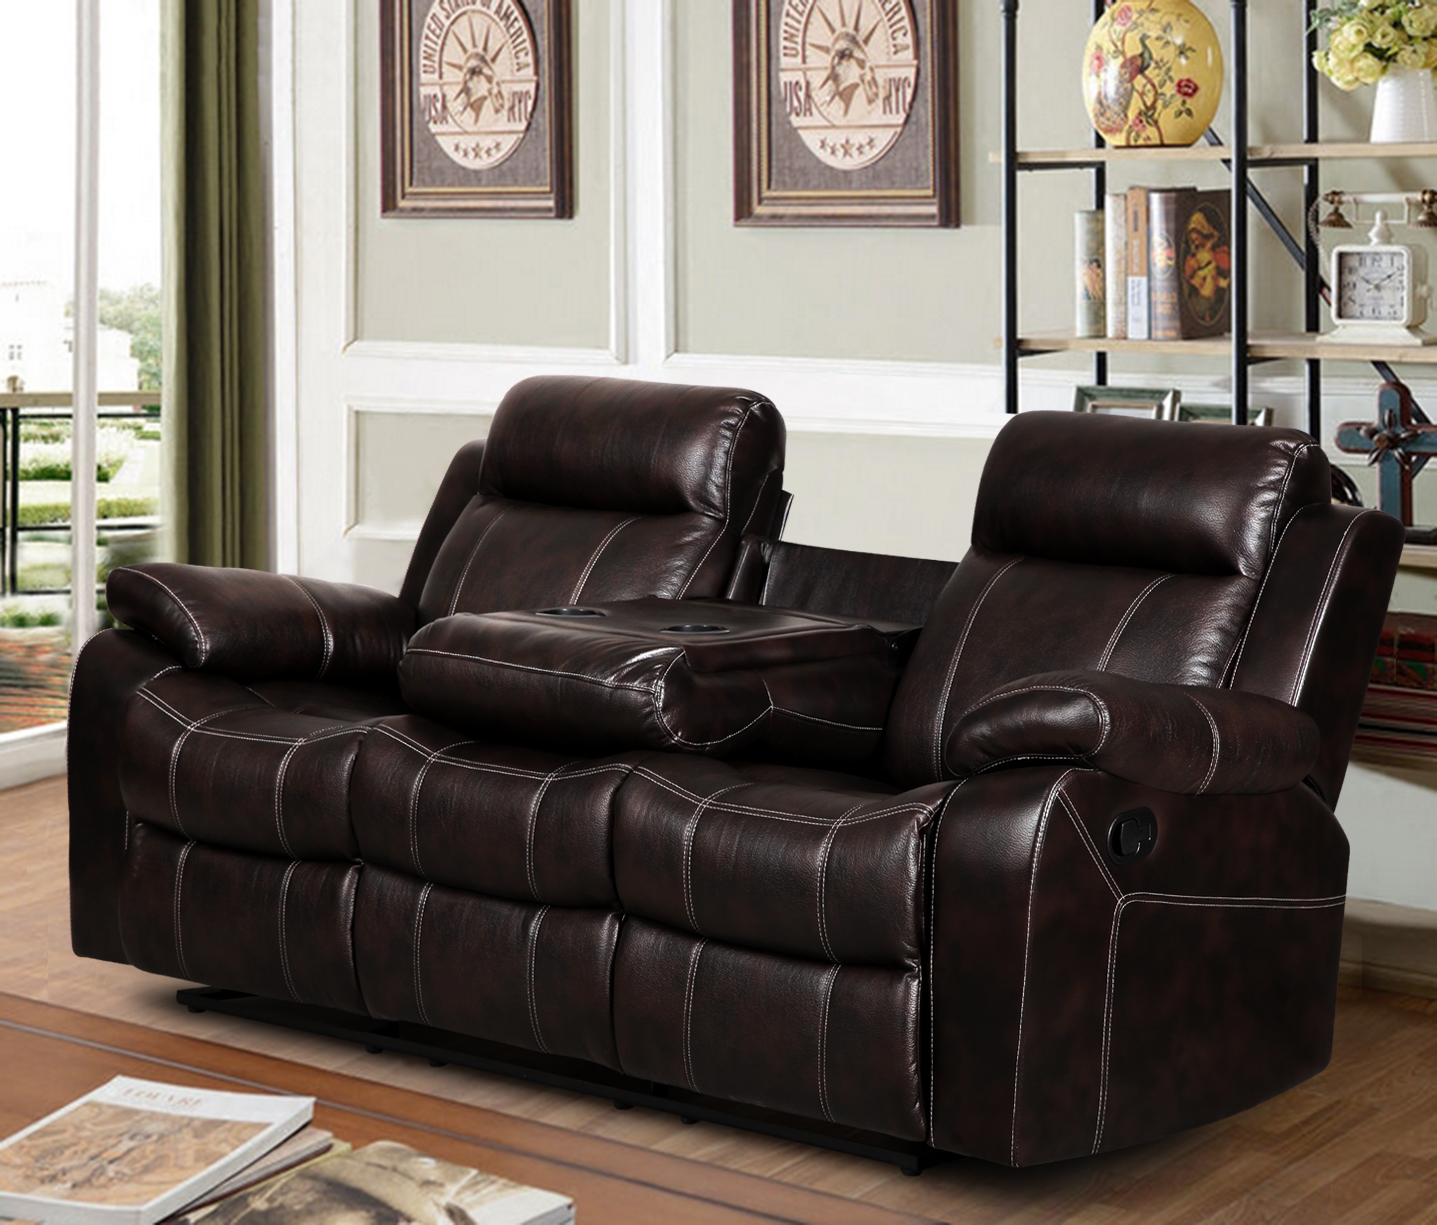 Vivienne Leather Air Reclining Sofa with Tea Table Dark Brown  sc 1 st  Walmart & Vivienne Leather Air Reclining Sofa with Tea Table Dark Brown ... islam-shia.org